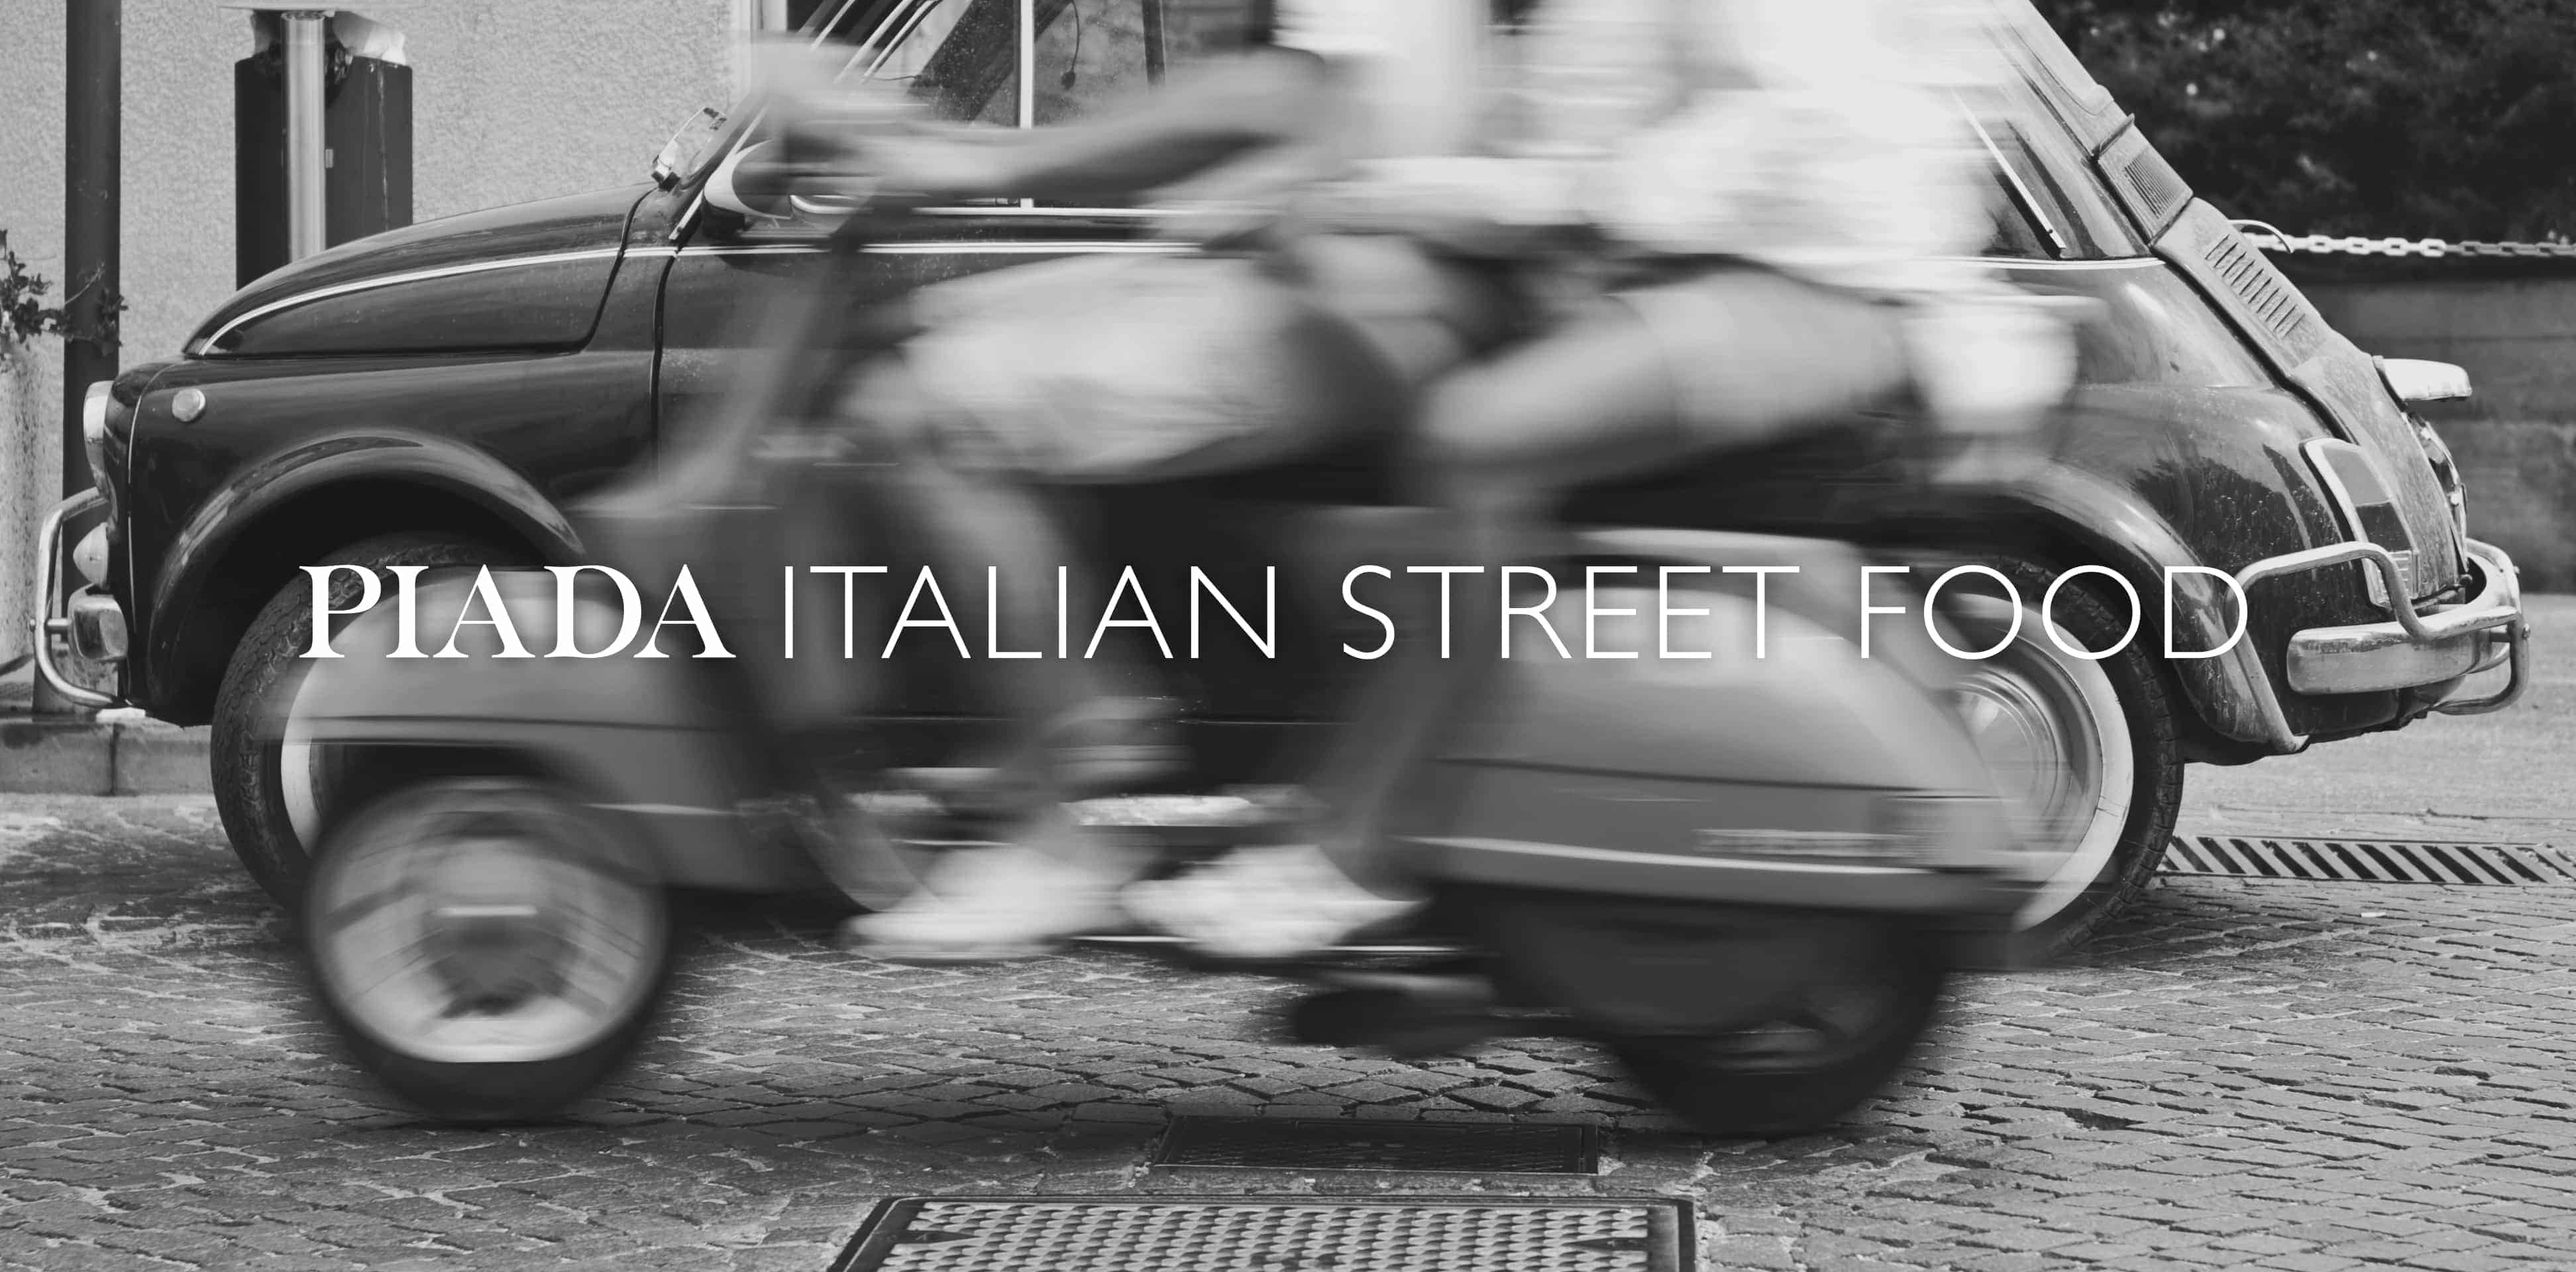 Need a quality meal in hurry? Look no further than Piada Italian Street Food.